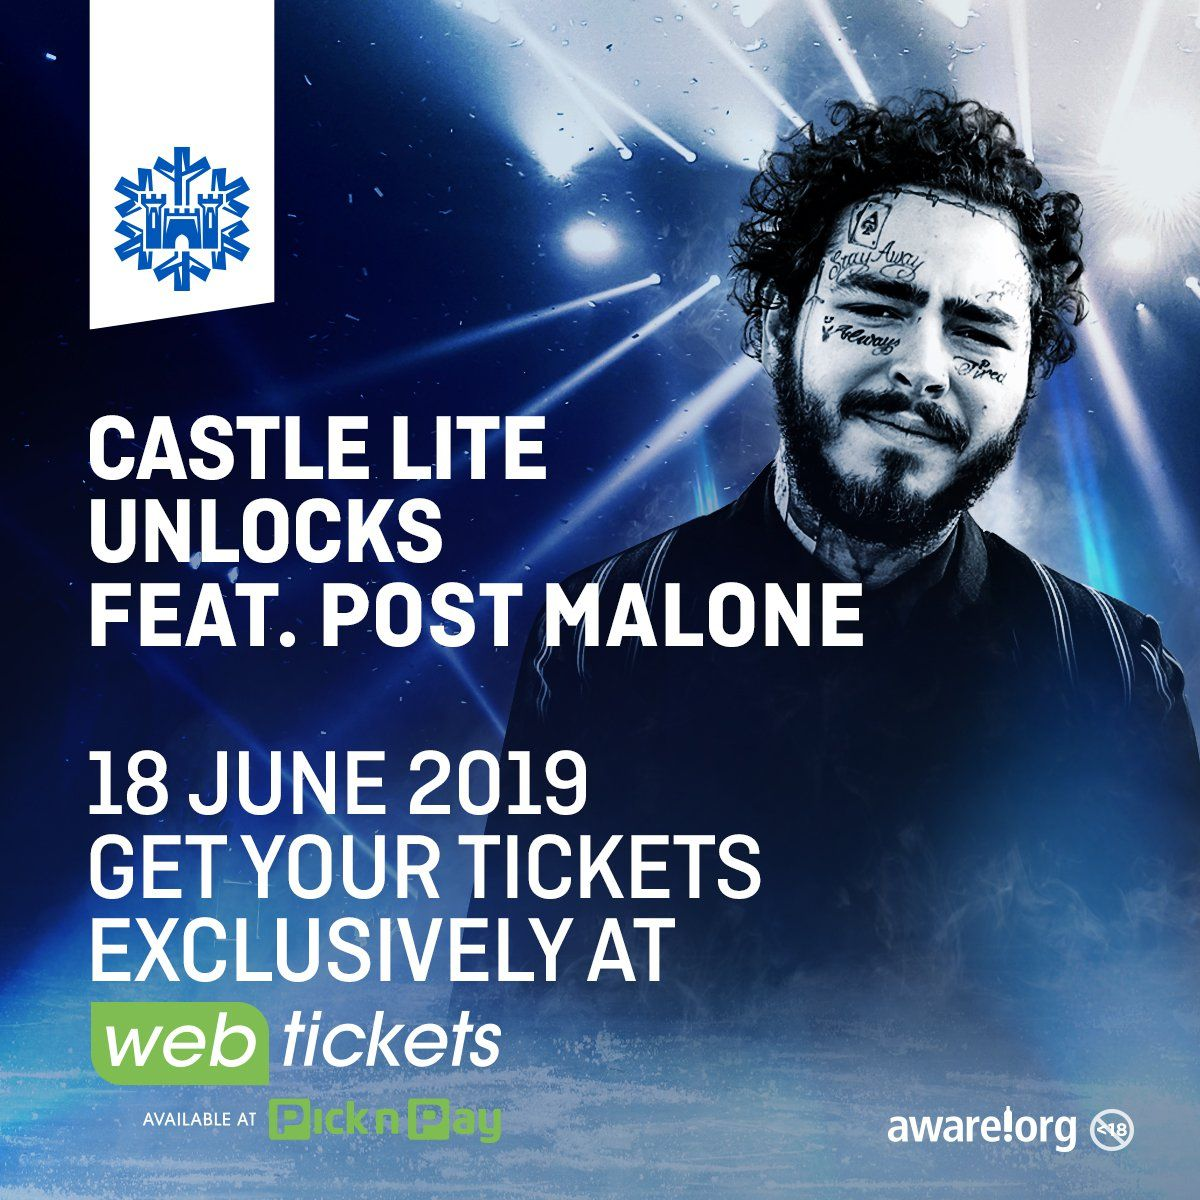 Post Malone To Headline Castle Lite Unlocks photo